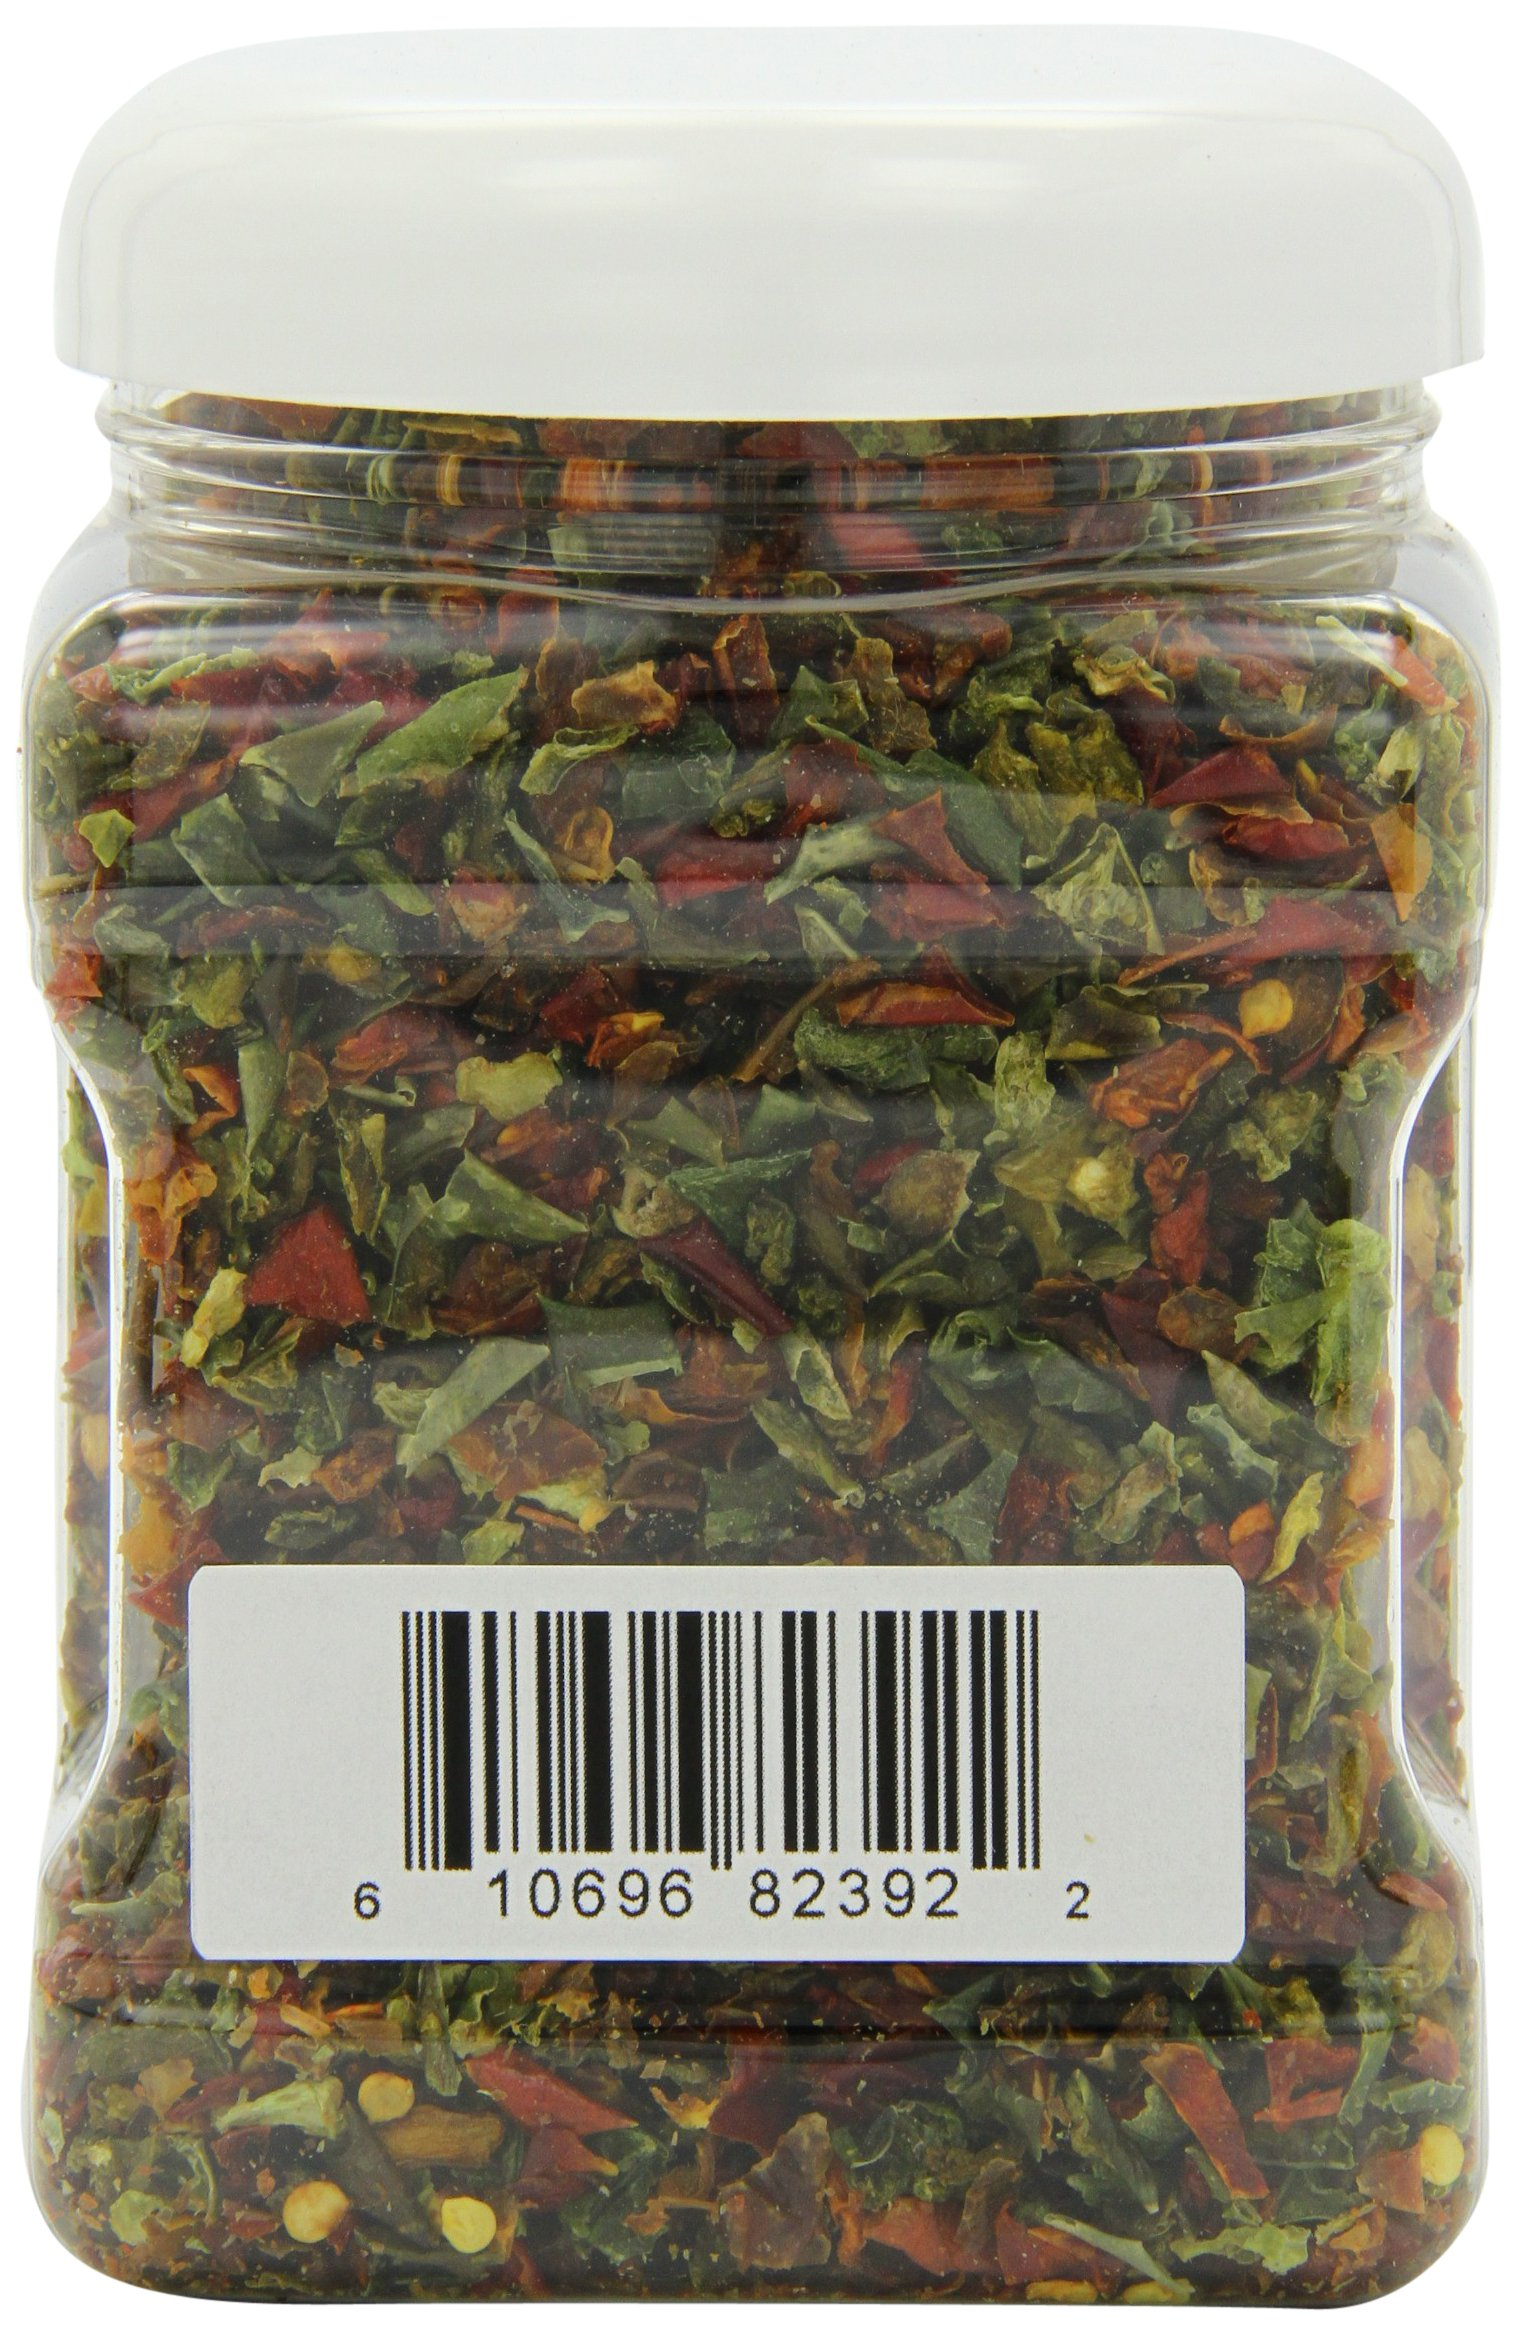 :Mother Earth Products Dried Mixed Bell Peppers, Red And Green, Quart Jar, Net Wt 9oZ (225g) by Mother Earth Products (Image #2)